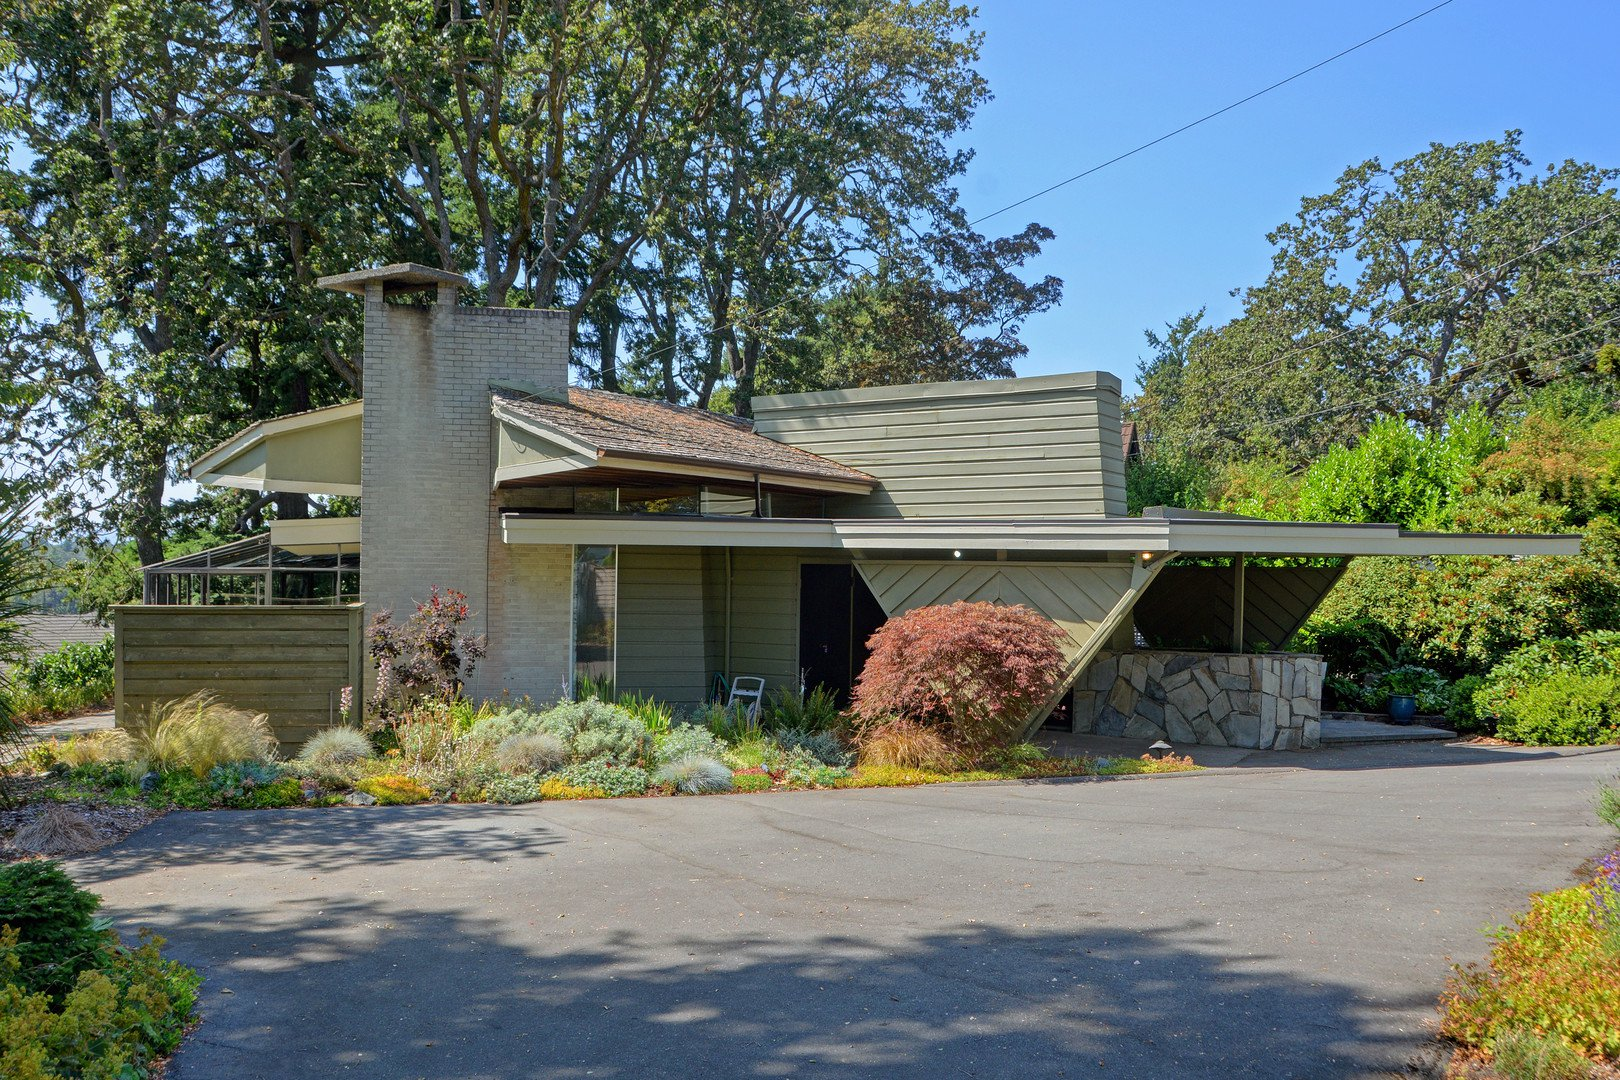 Main Photo: 3516 Richmond Road in VICTORIA: SE Mt Tolmie Single Family Detached for sale (Saanich East)  : MLS®# 411087